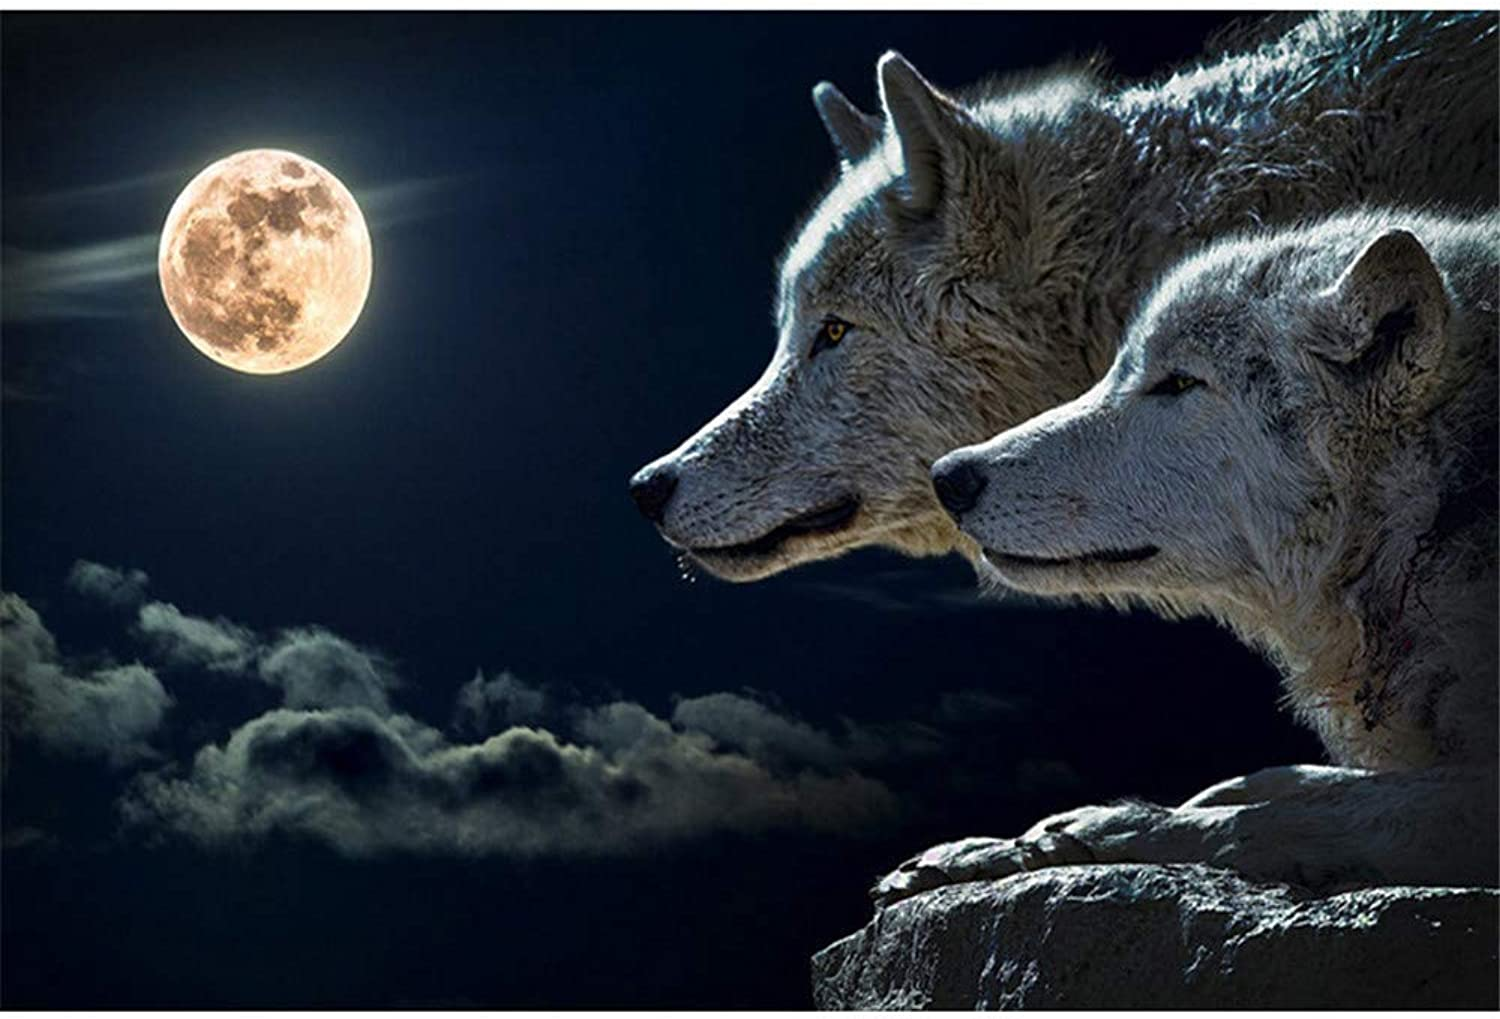 DIY Oil Paint by Number Kit for Adults Beginner 16x20 Inch - Moonlit Wolves,Drawing with Brushes Living Room Decor Decorations Gifts (Framed)